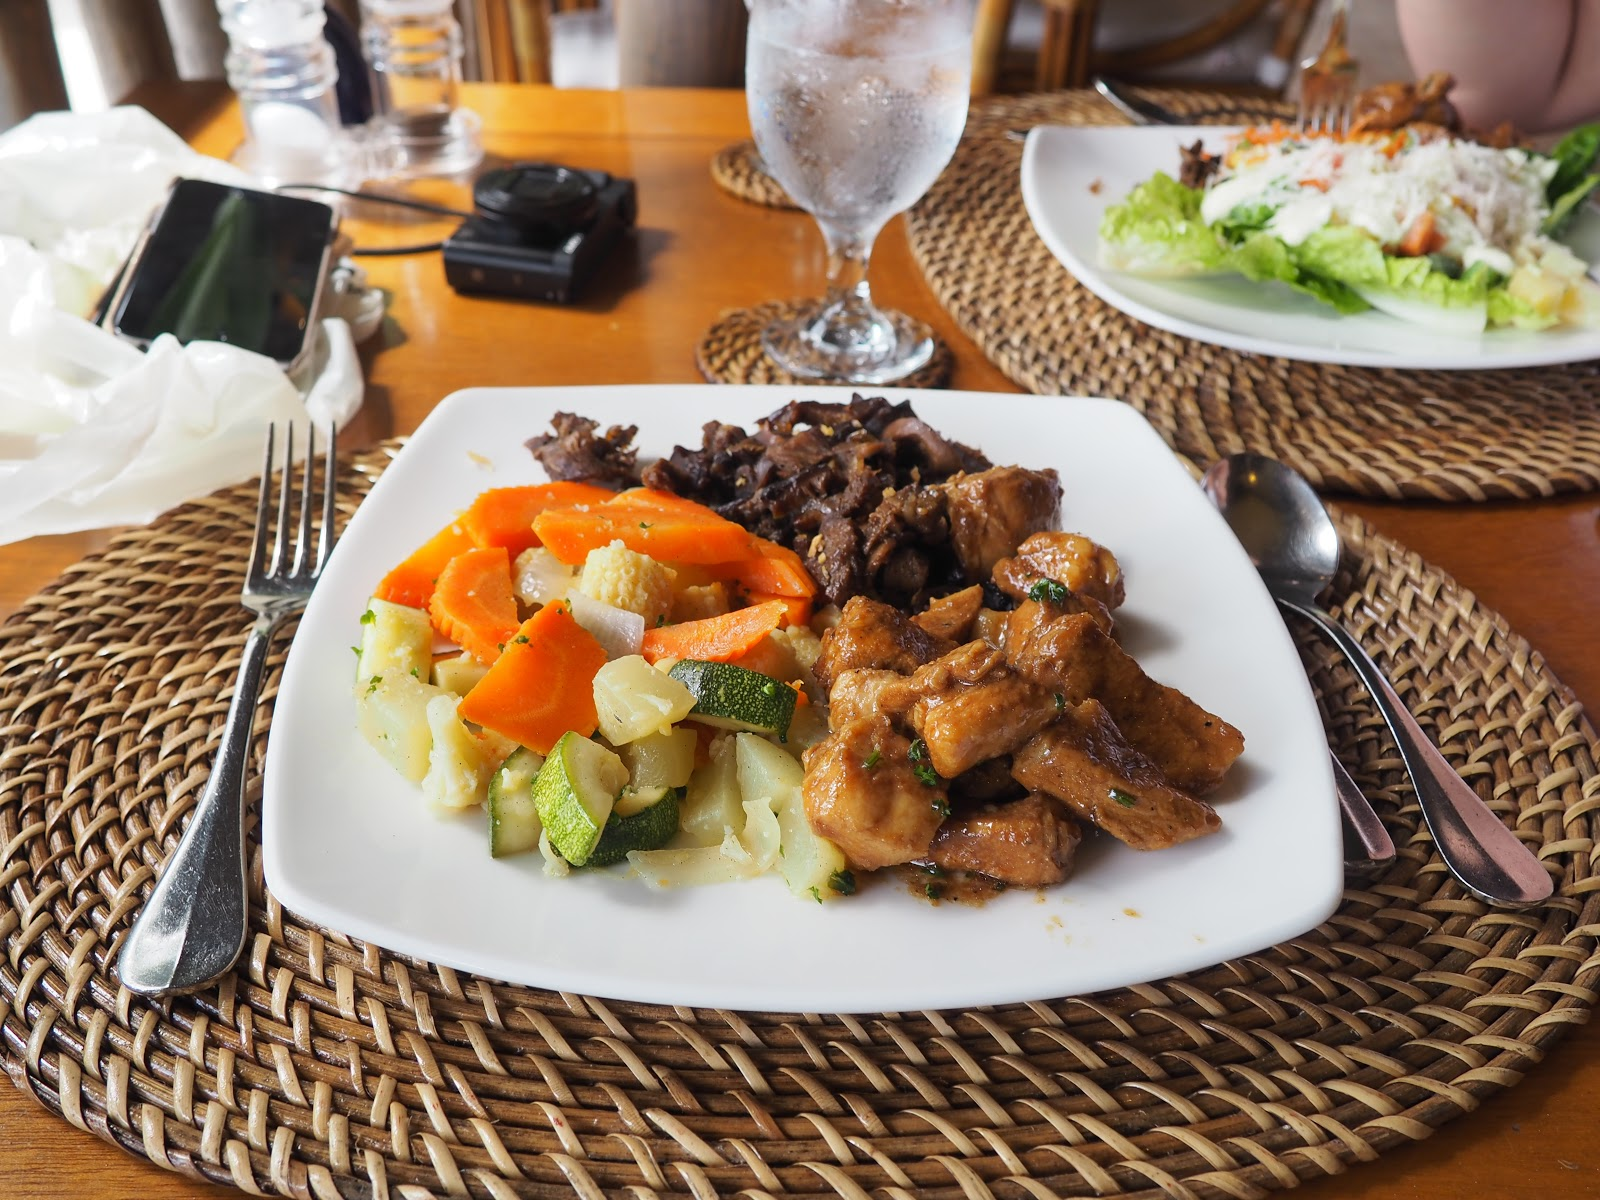 plate of buffet food, Miniloc Island, El Nido